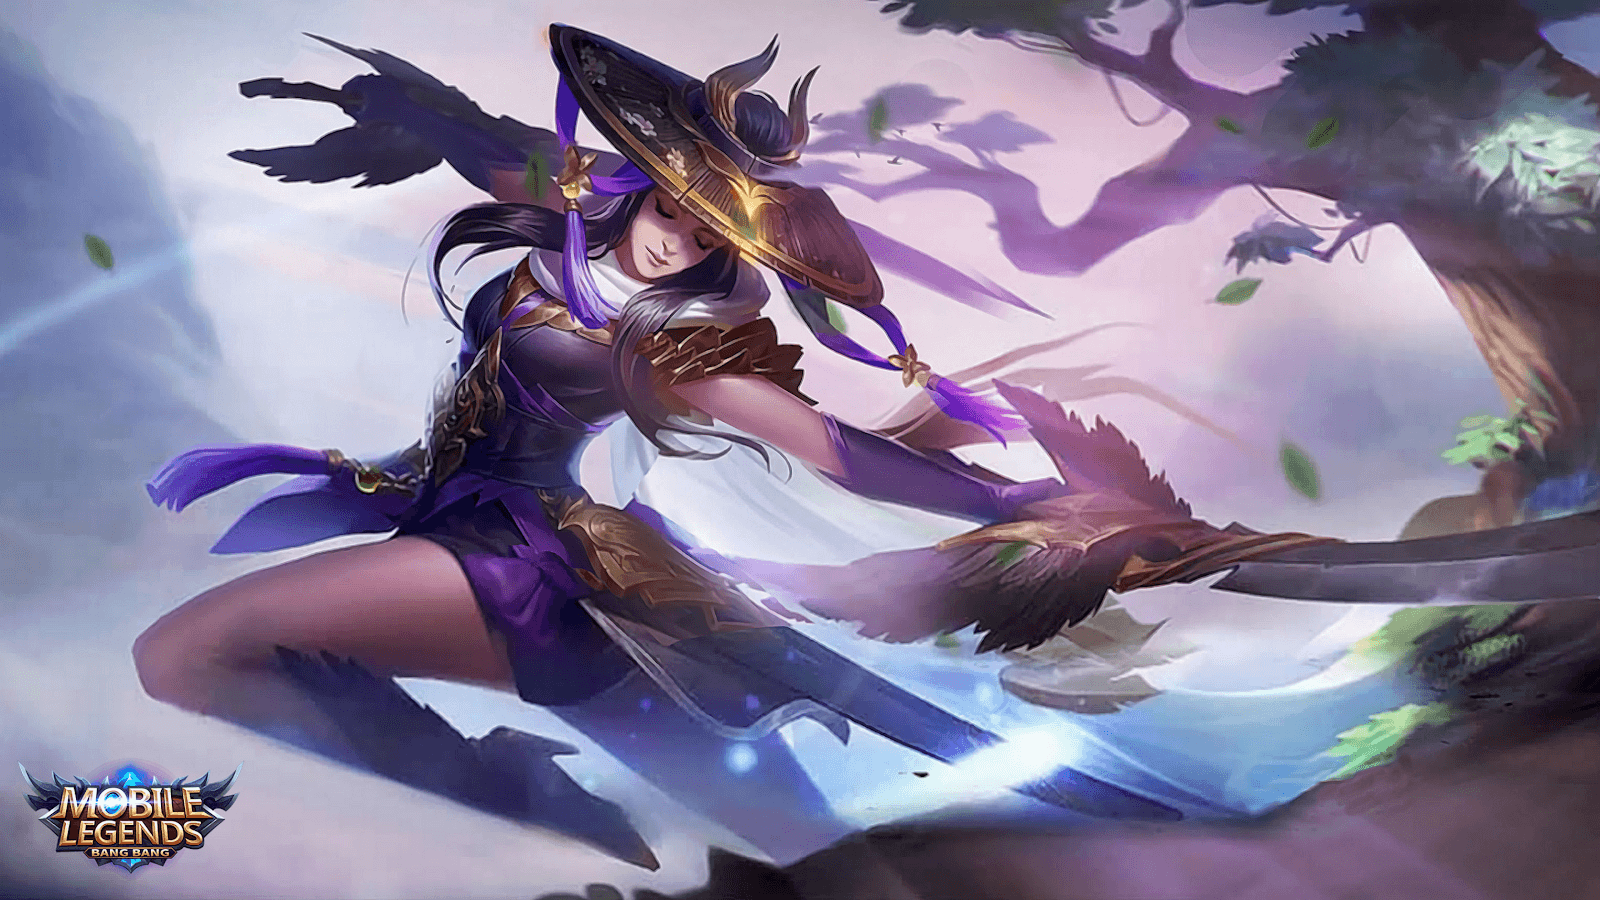 Fanny Mobile Legends Wallpapers Wallpaper Cave